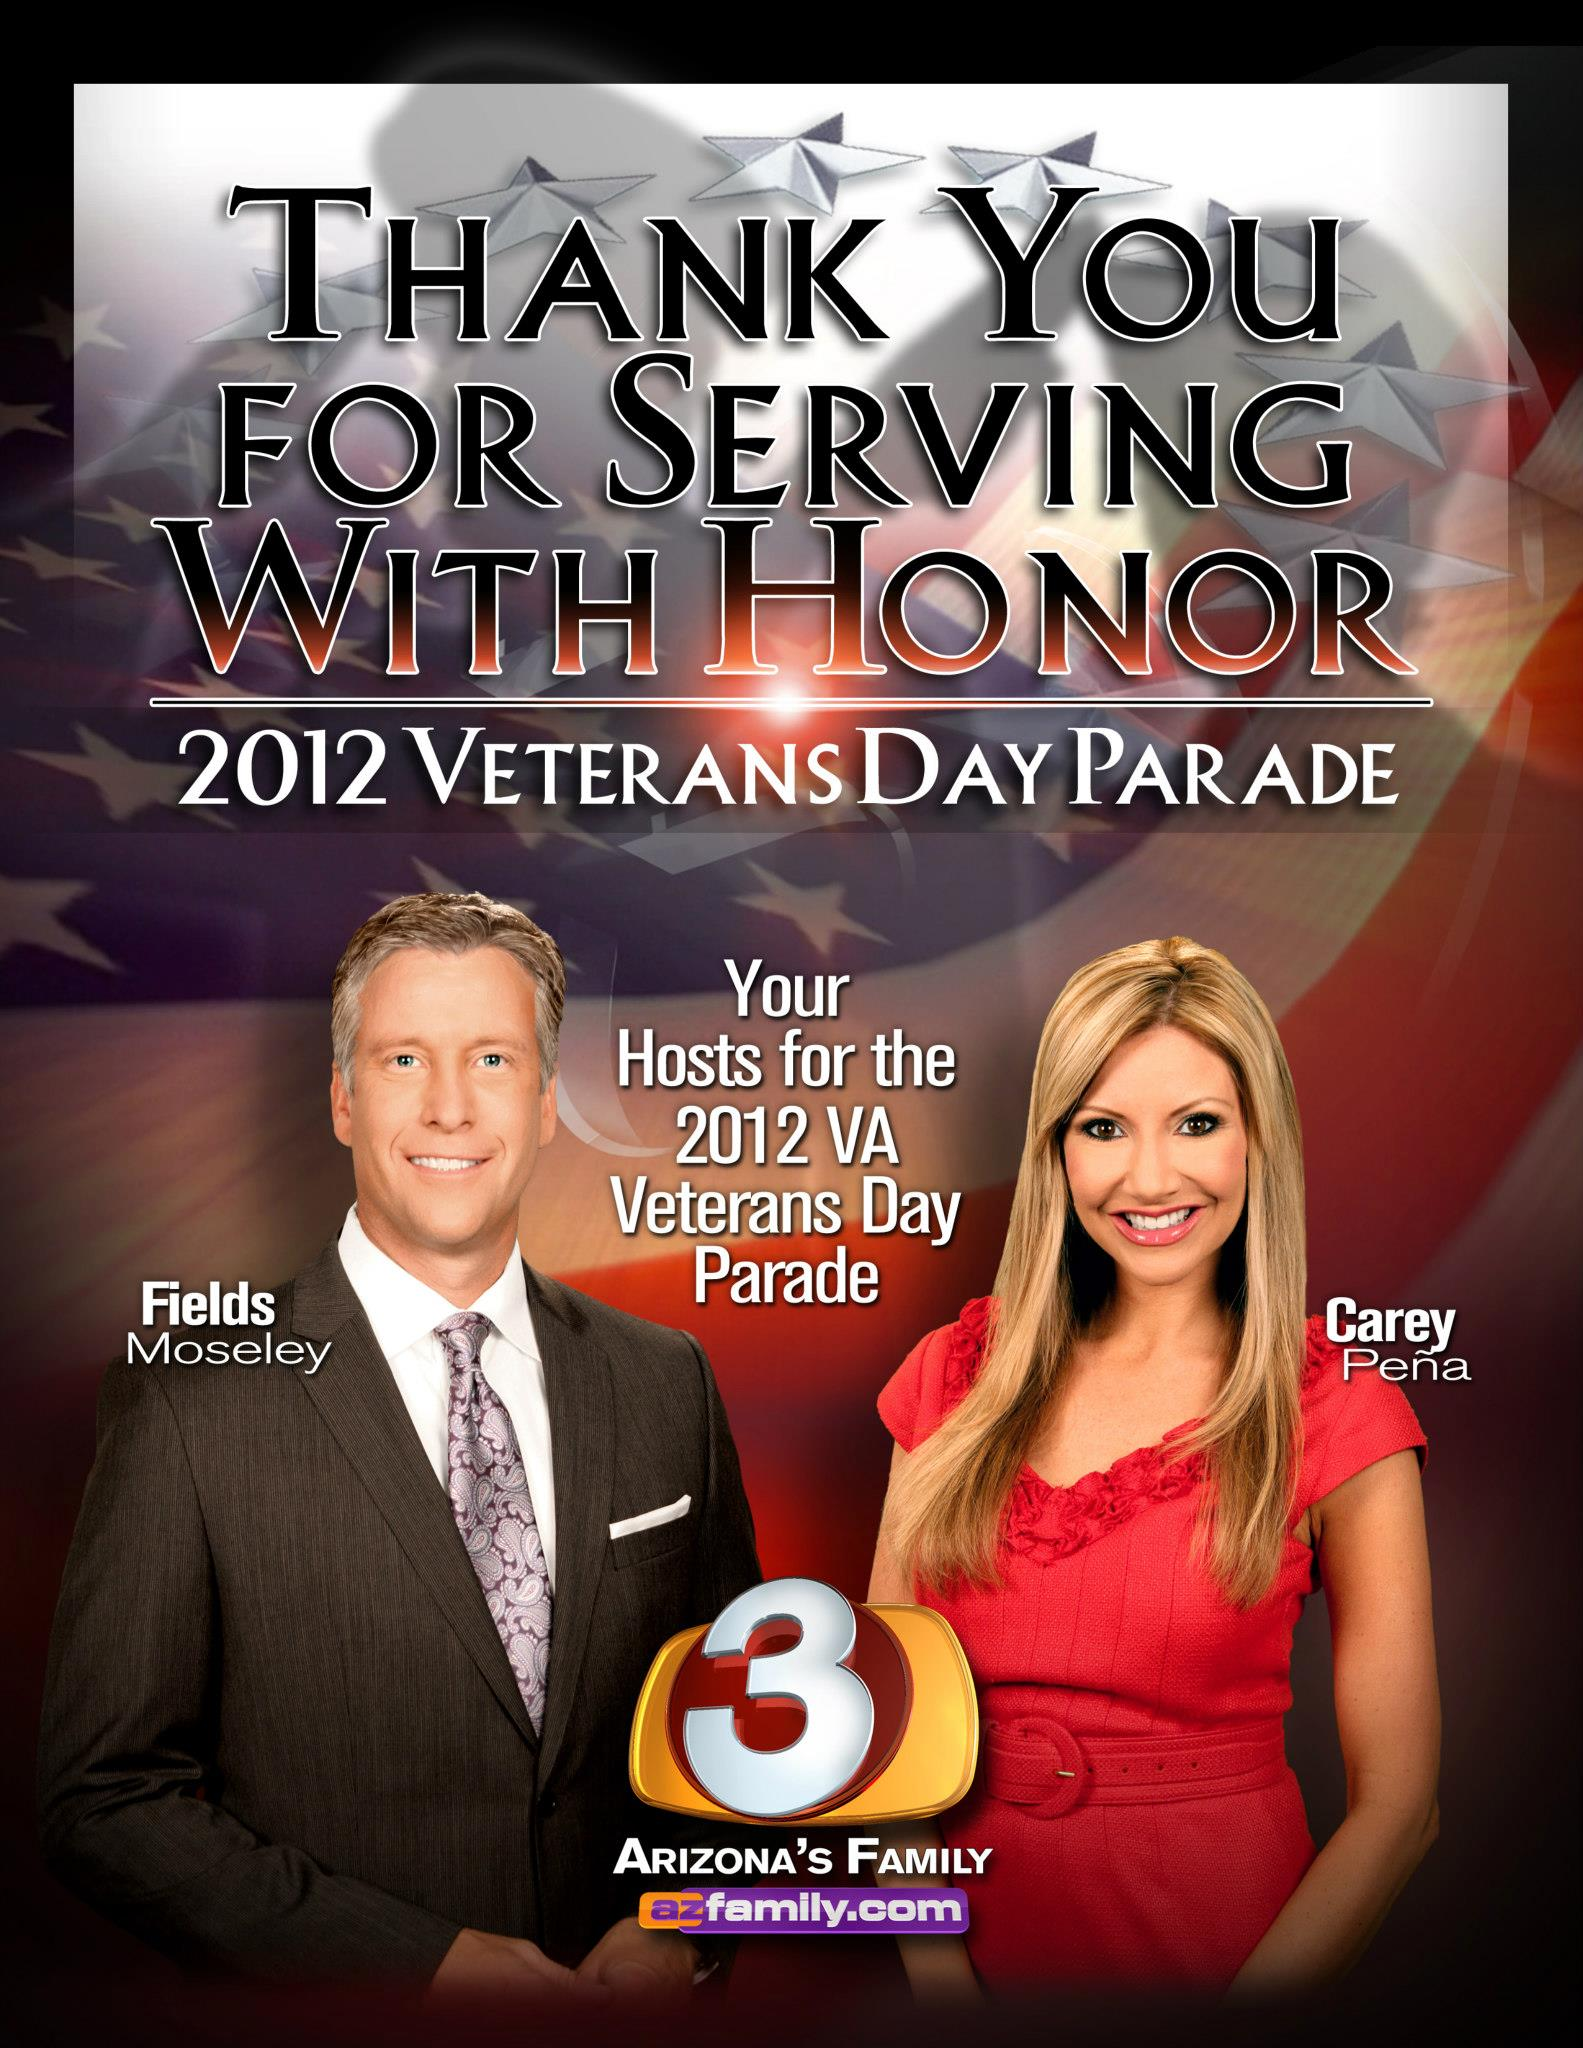 Carey Pena and Fields Moseley host Veterans Day Parade